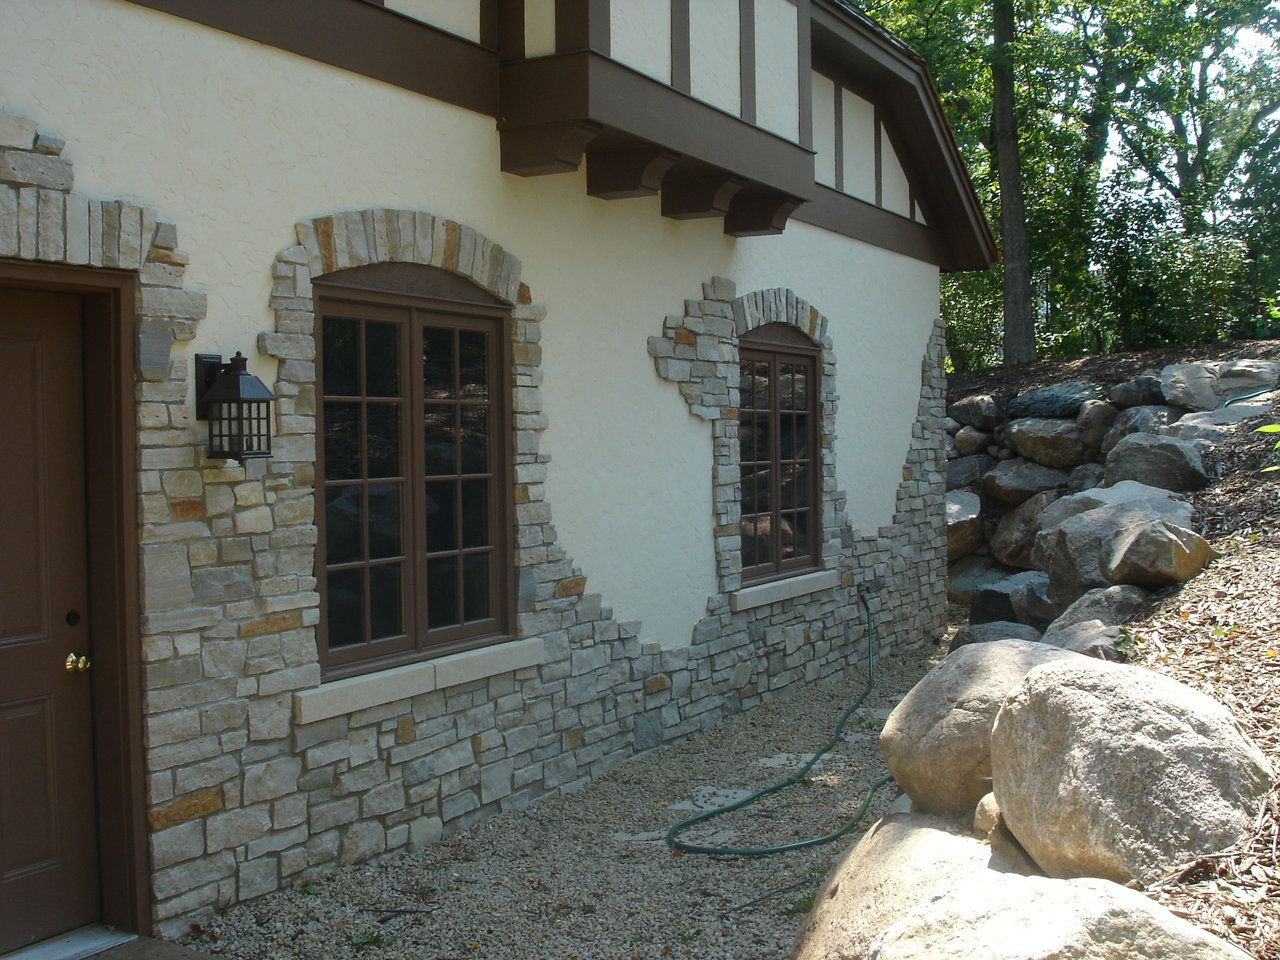 stucco and stone | STONE-STUCCO WALLS FEATURED IN THE ...